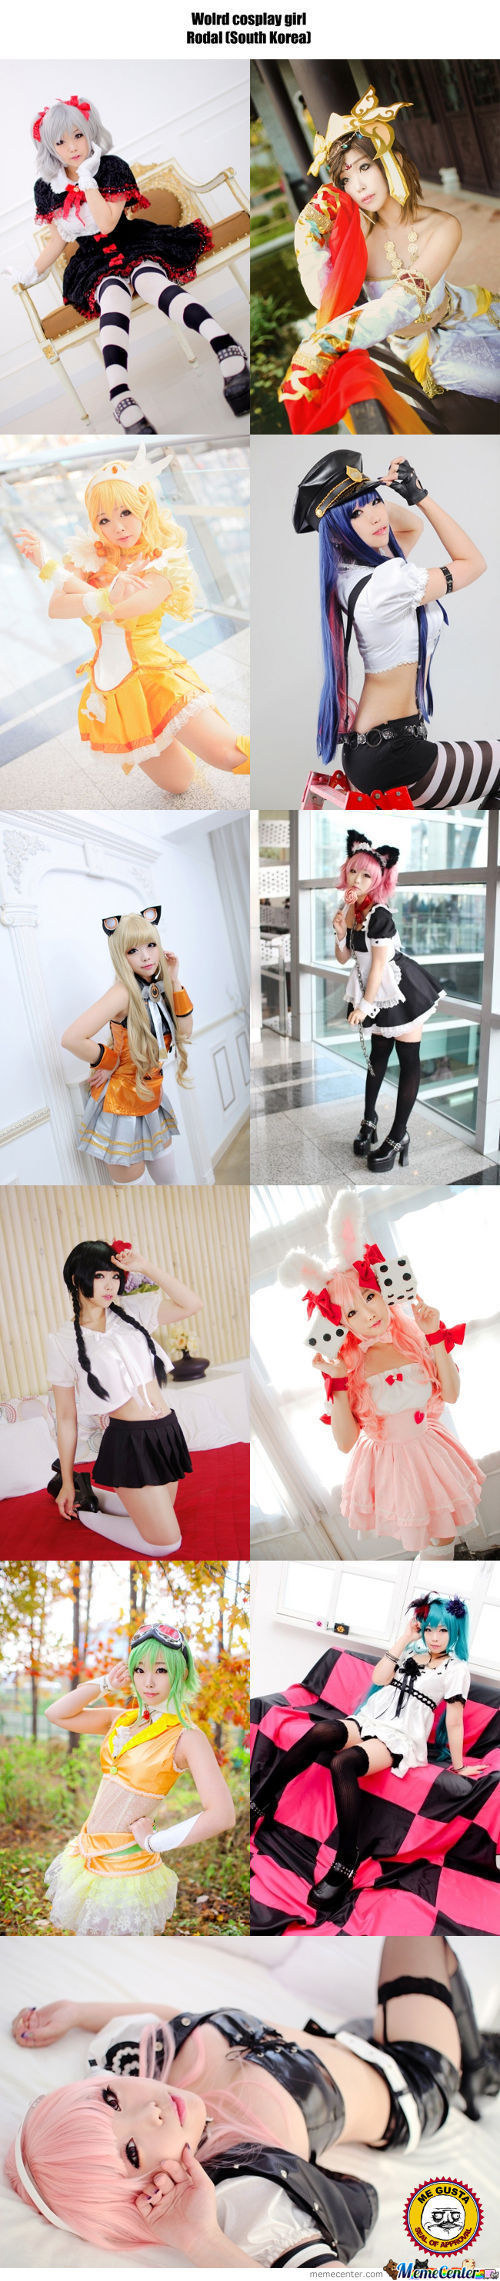 Cosplay Girl 45 : Rodal (South Korea)